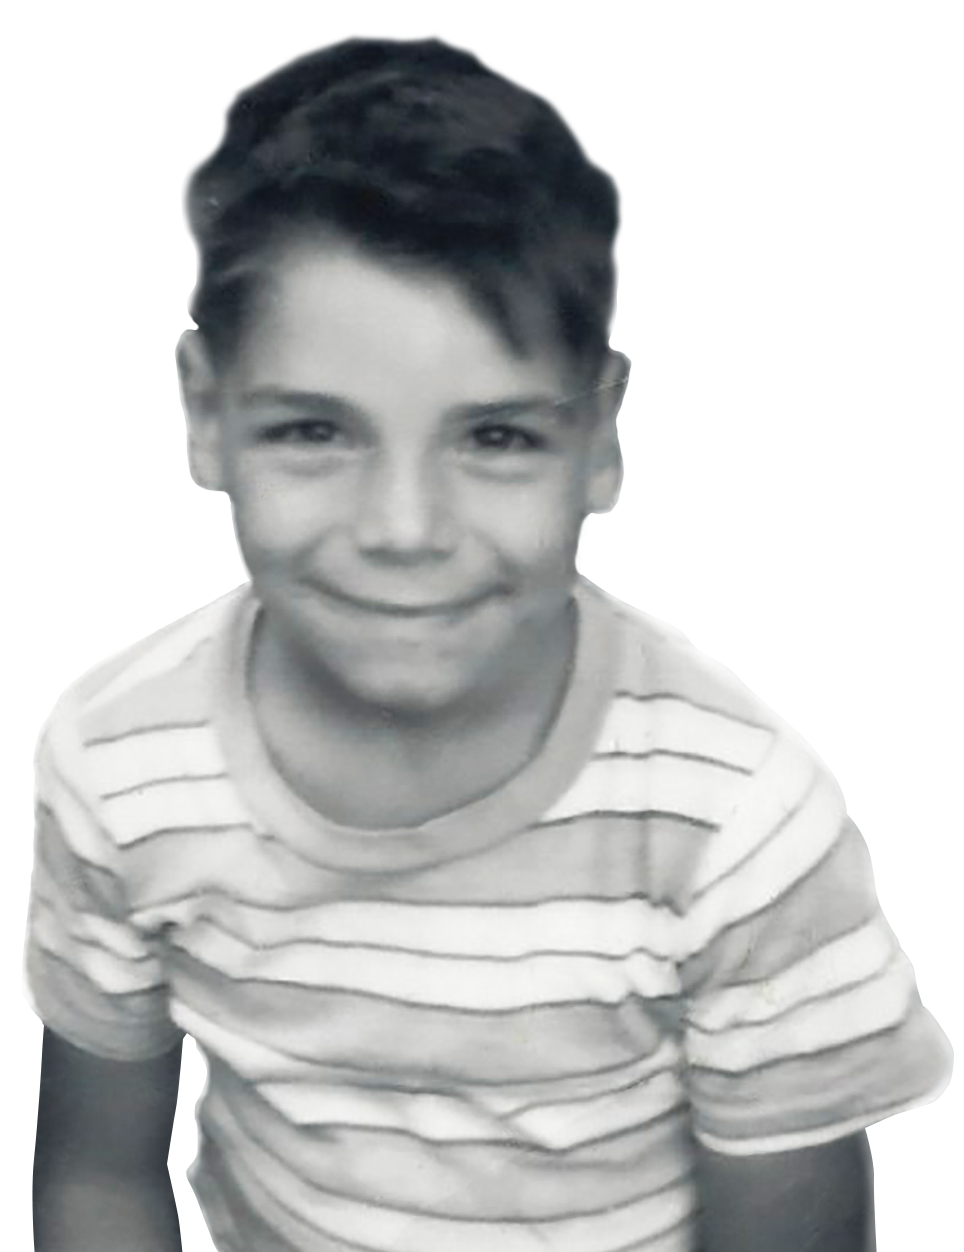 frank_Somma_Kid.png